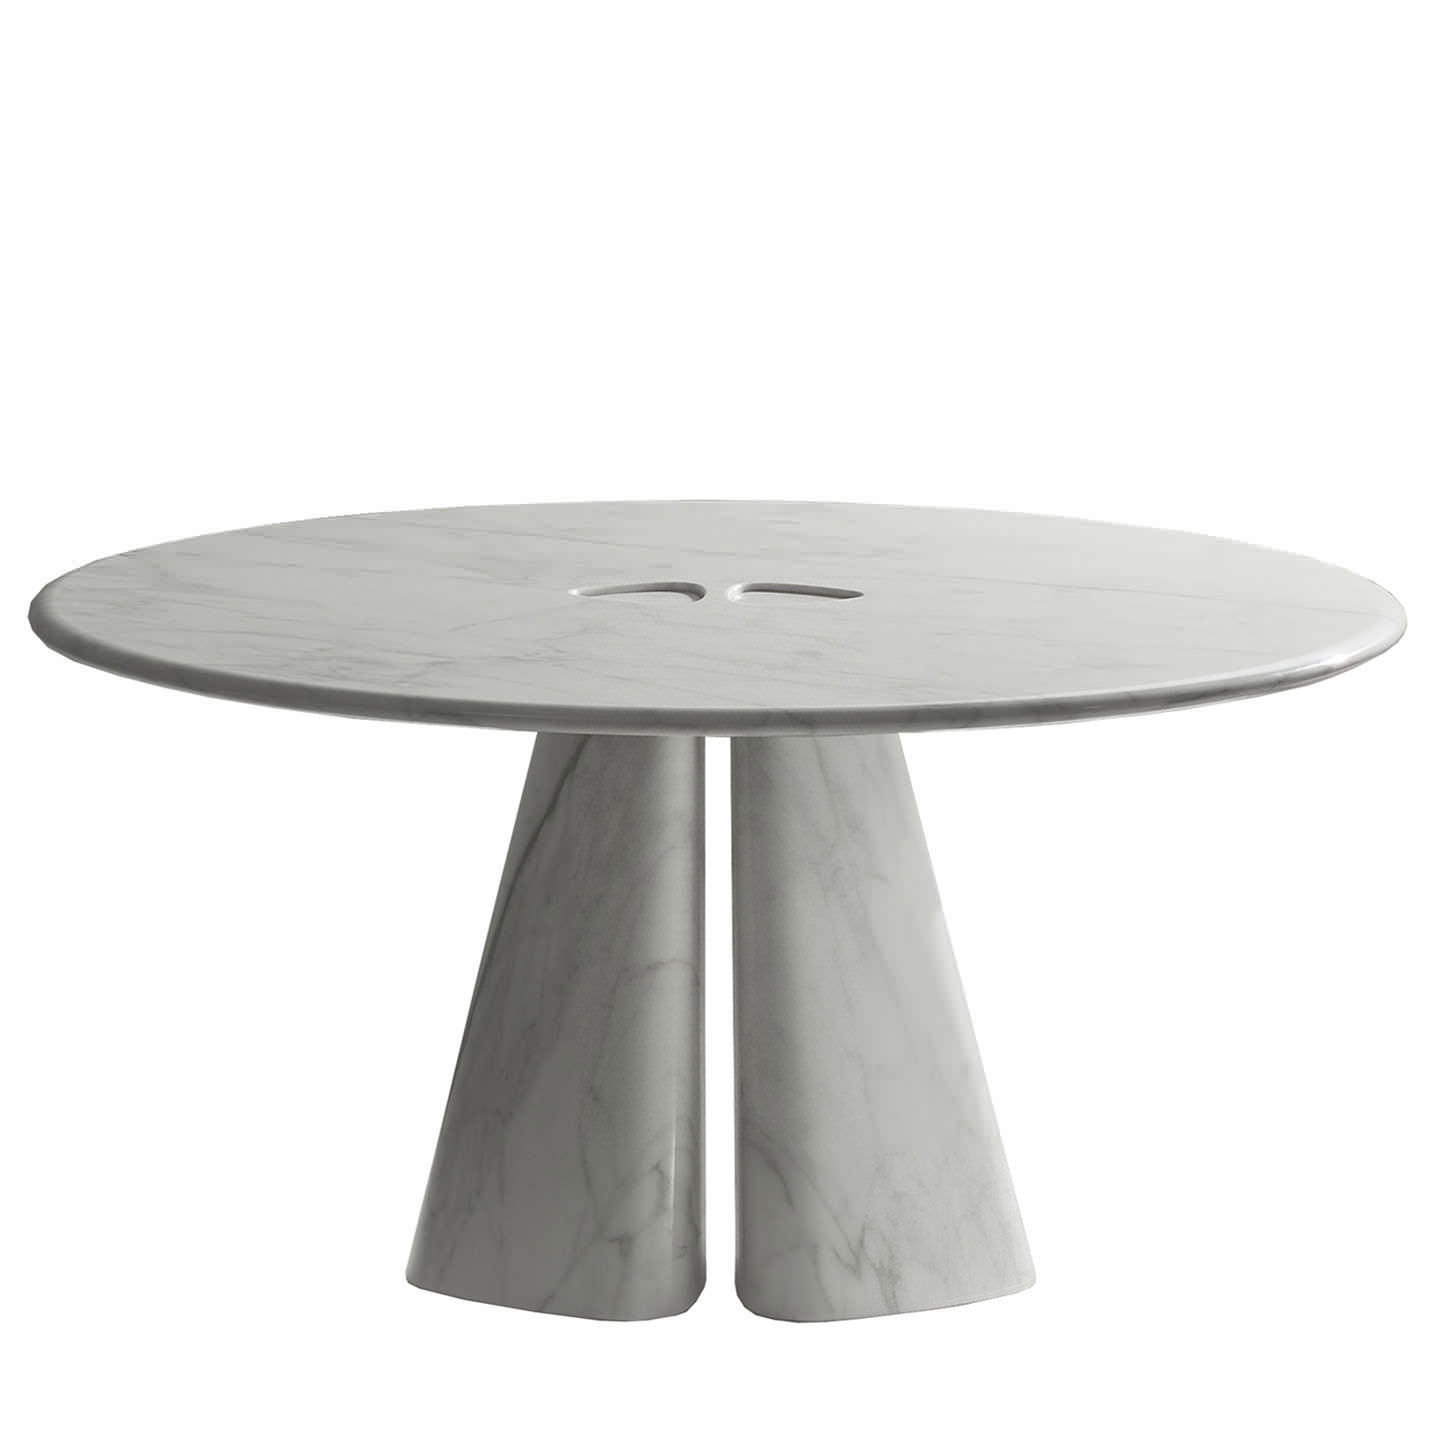 Table contemporaine / en marbre / ronde - RAJA BD 48 T by Bartoli ...